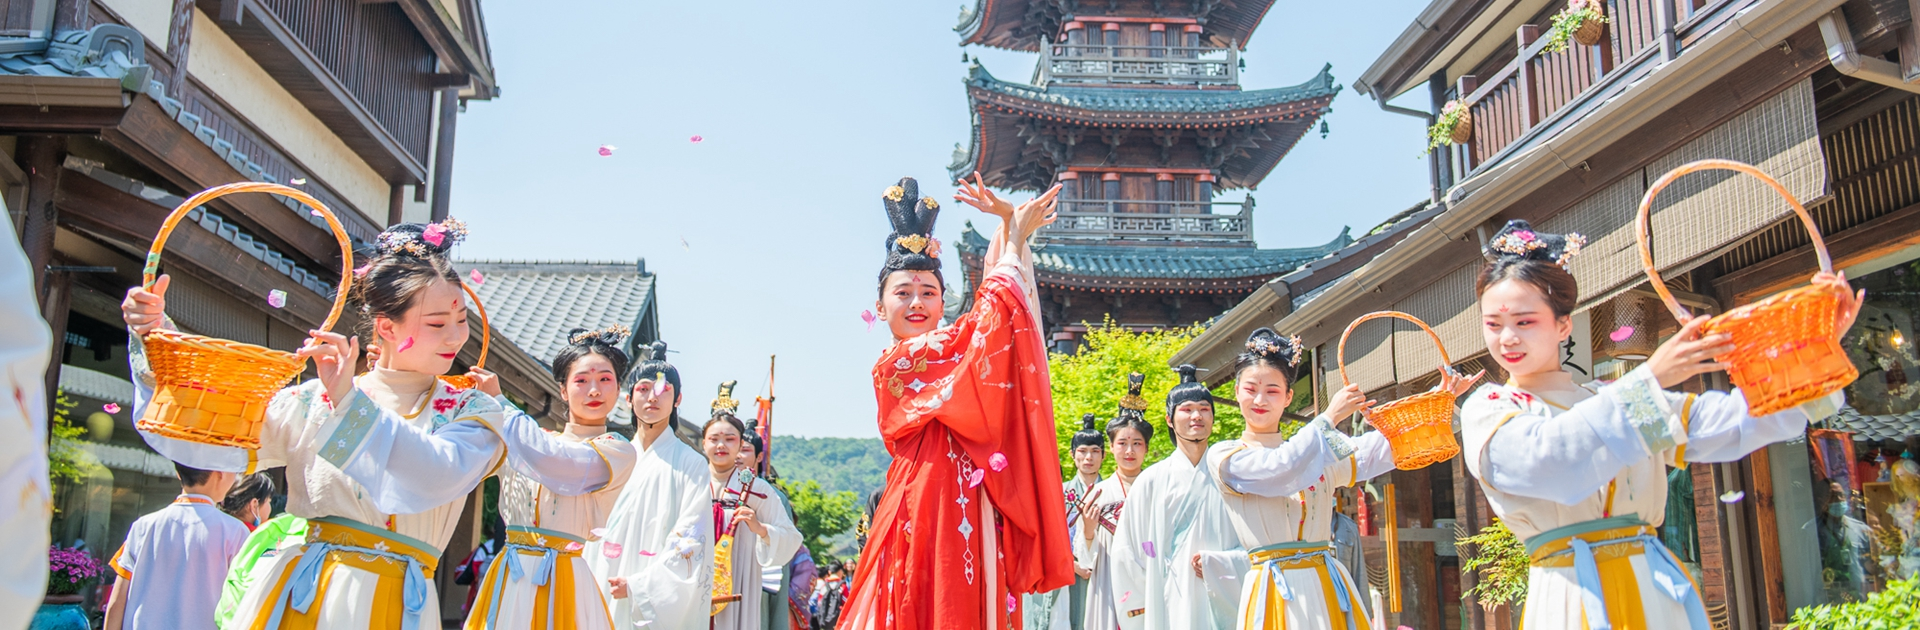 Binhu's wealth of attractions prove popular with sightseers